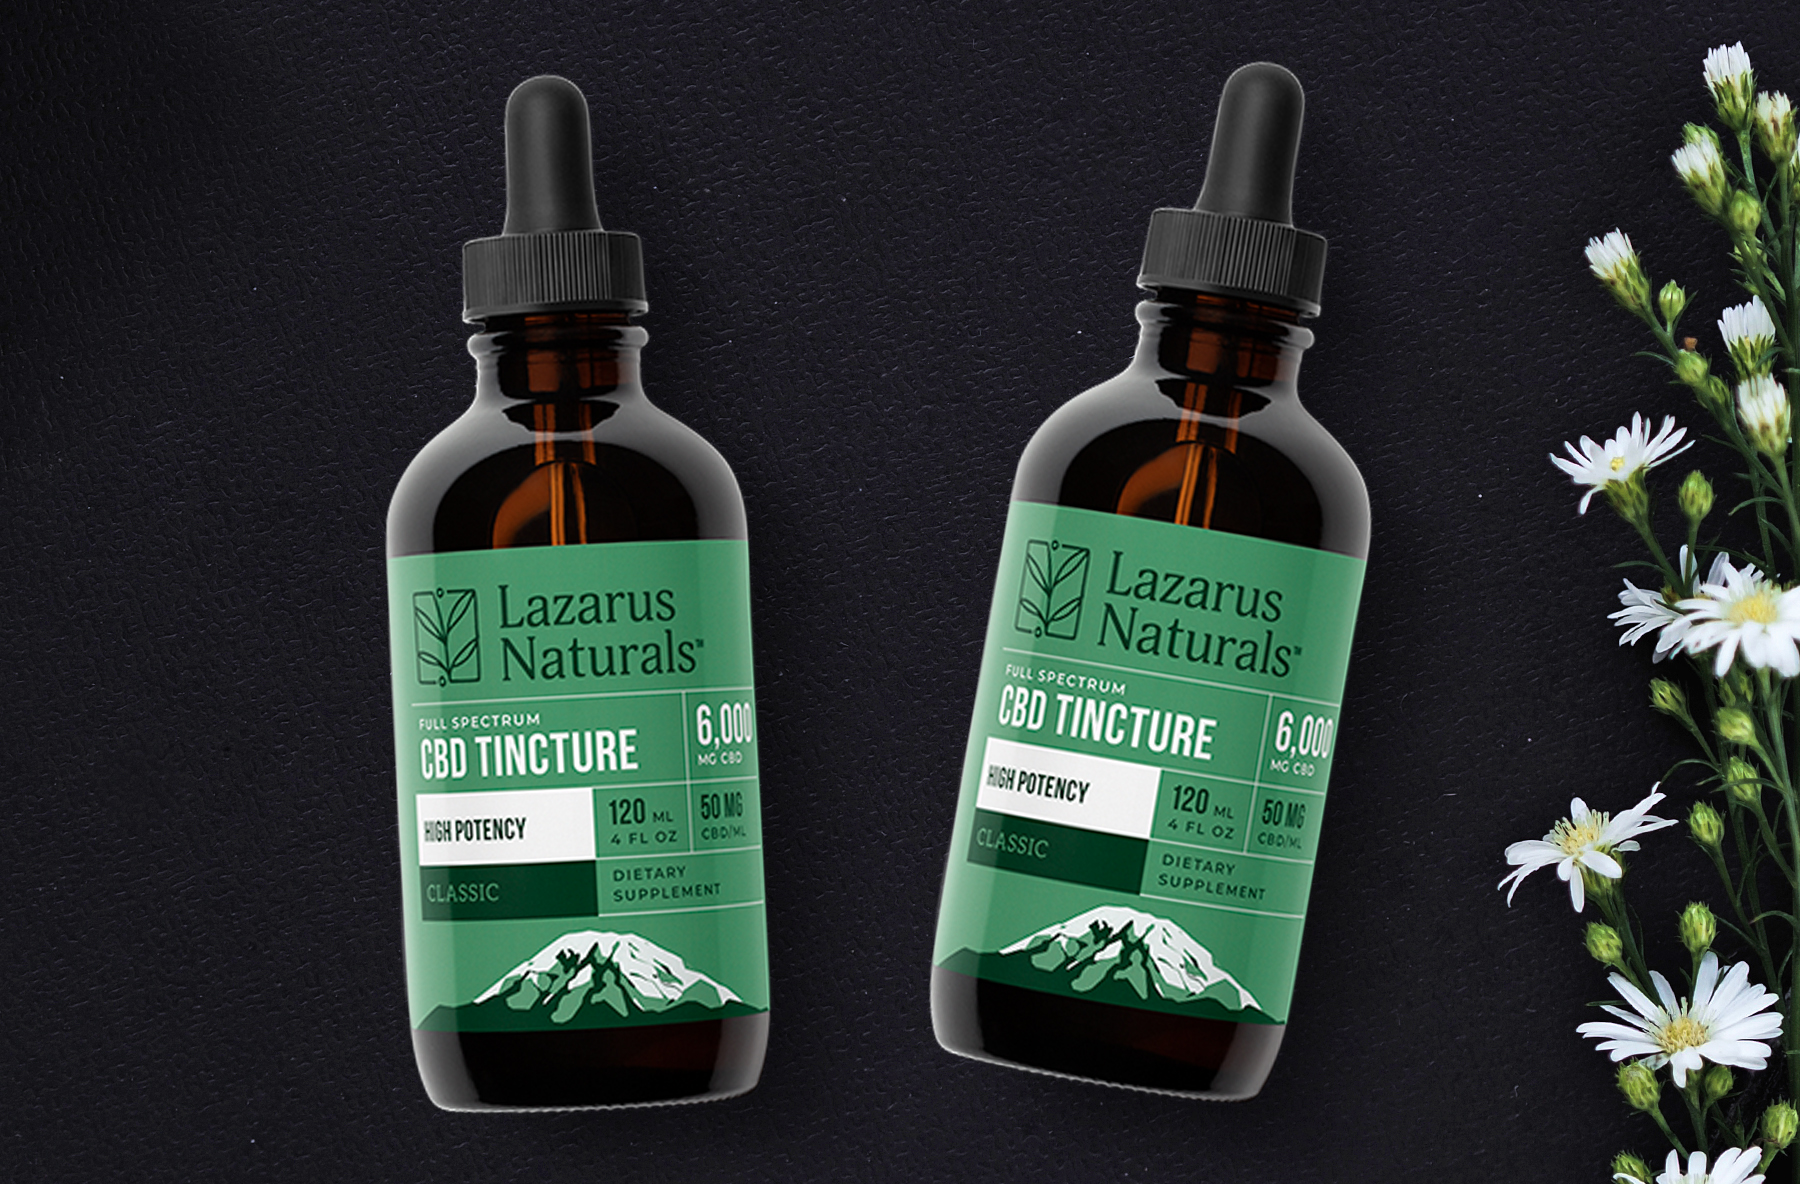 Lazarus Naturals - Lazarus Naturals Review: Is Their CBD Any Good?